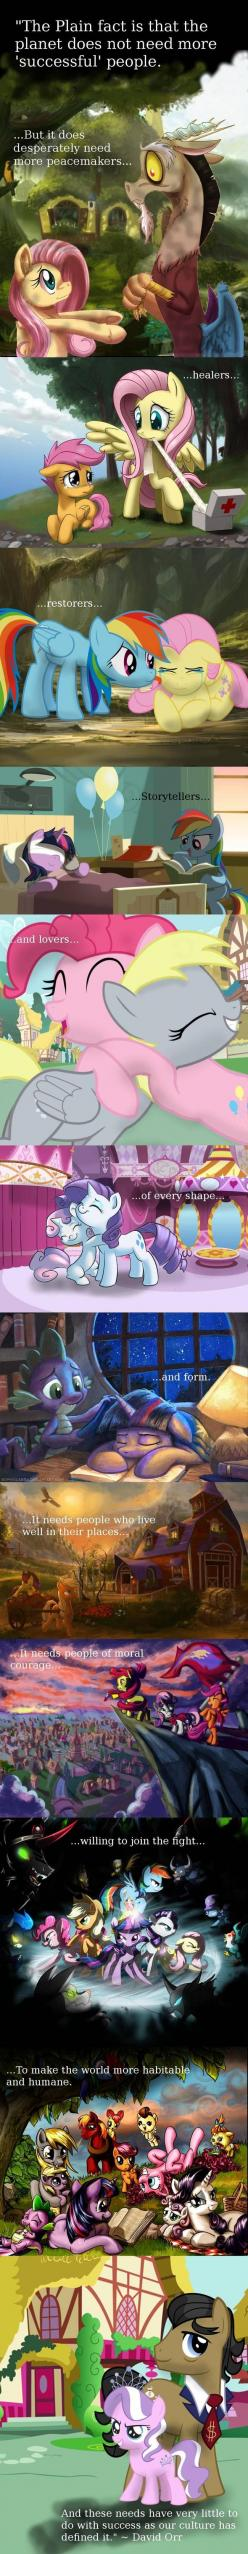 Inspiring quote told in My Little Pony fanart - via reddit - yes i know it's my little pony but this is actually cool: Inspirational Quote, Mylittlepony, Pony Fanart, Pegasister, Quote Told, My Little Pony, Mlp